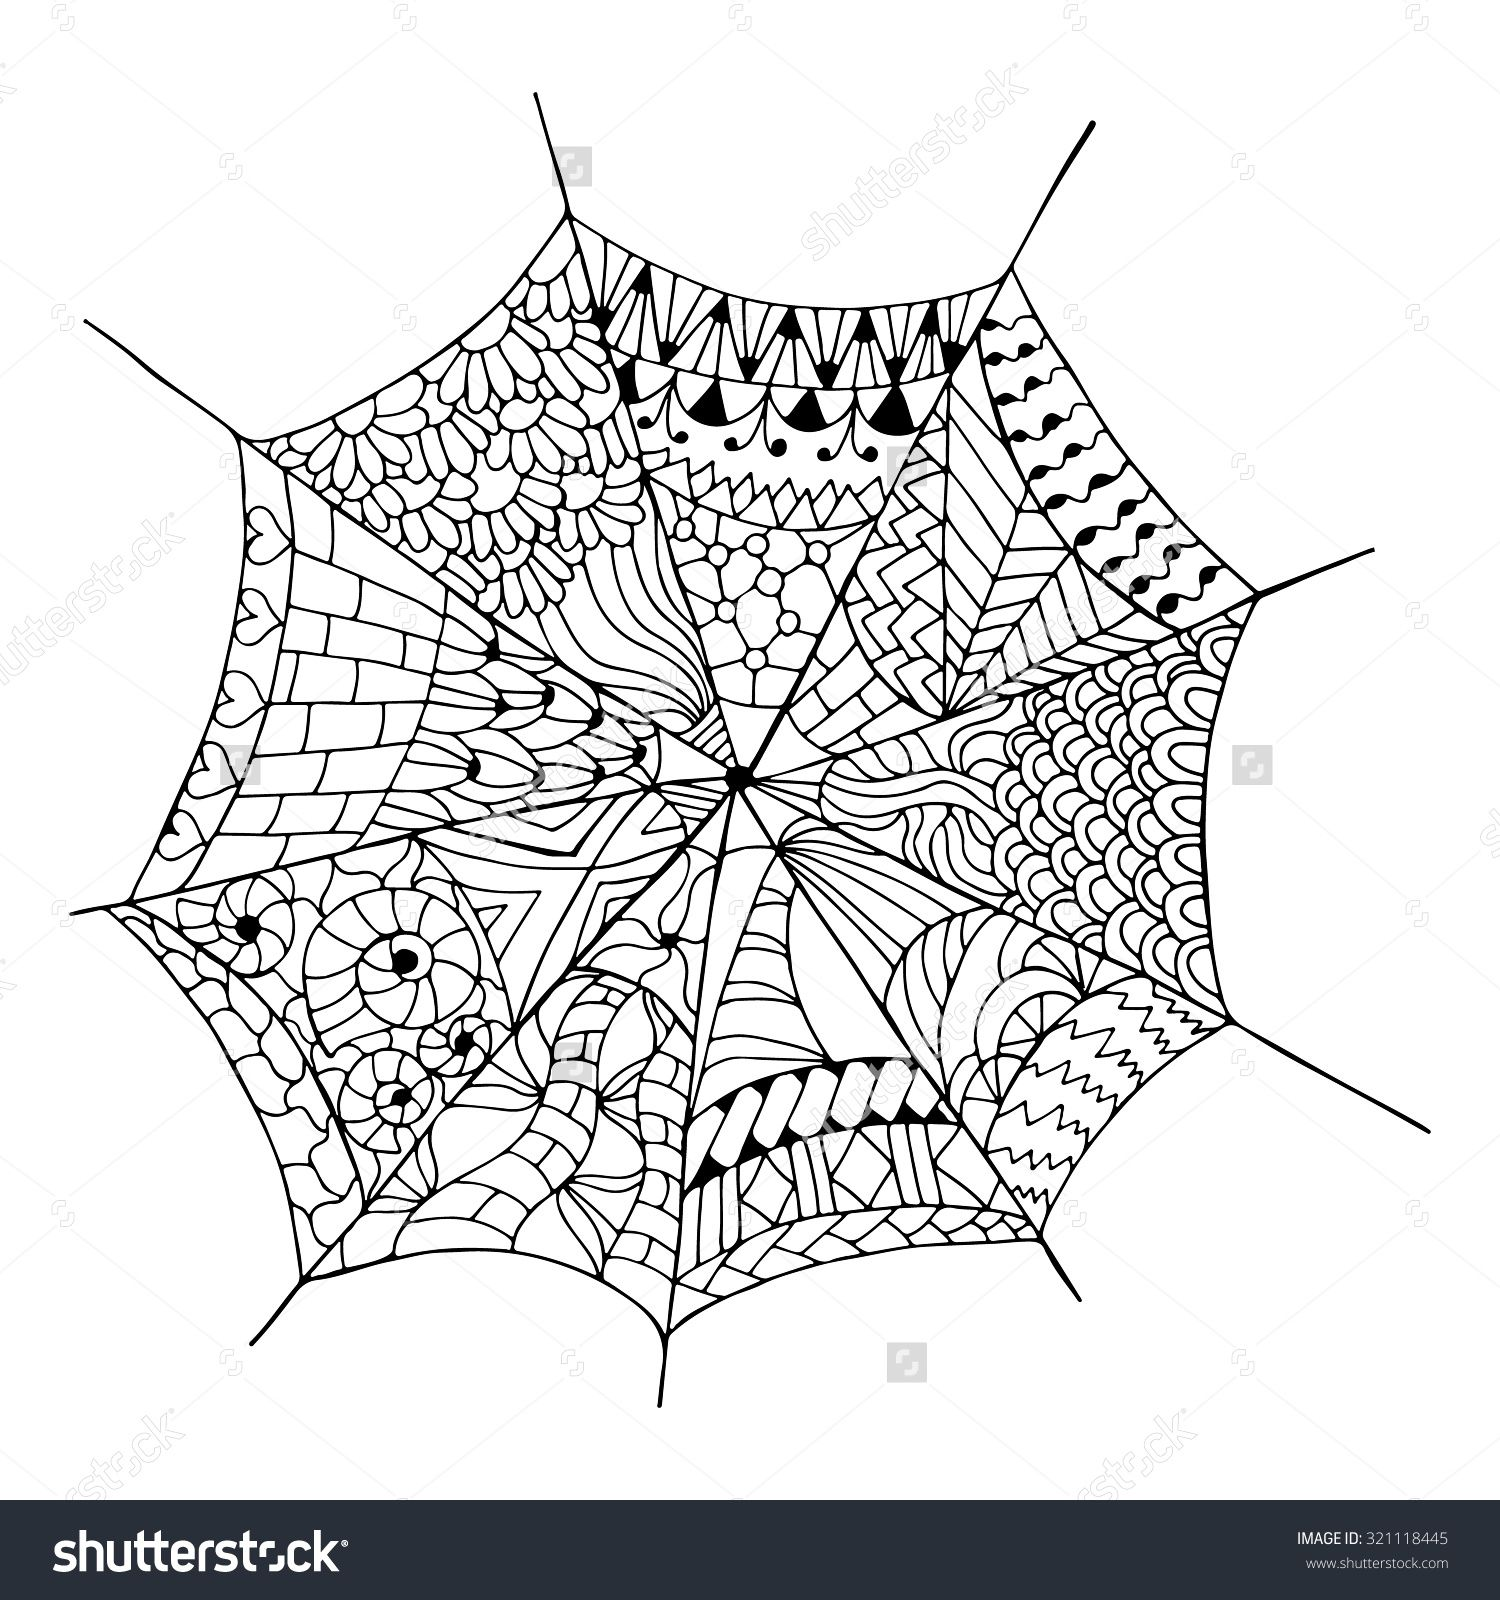 Hand Drawn Spider Web For Anti Stress. Coloring Page With High ...